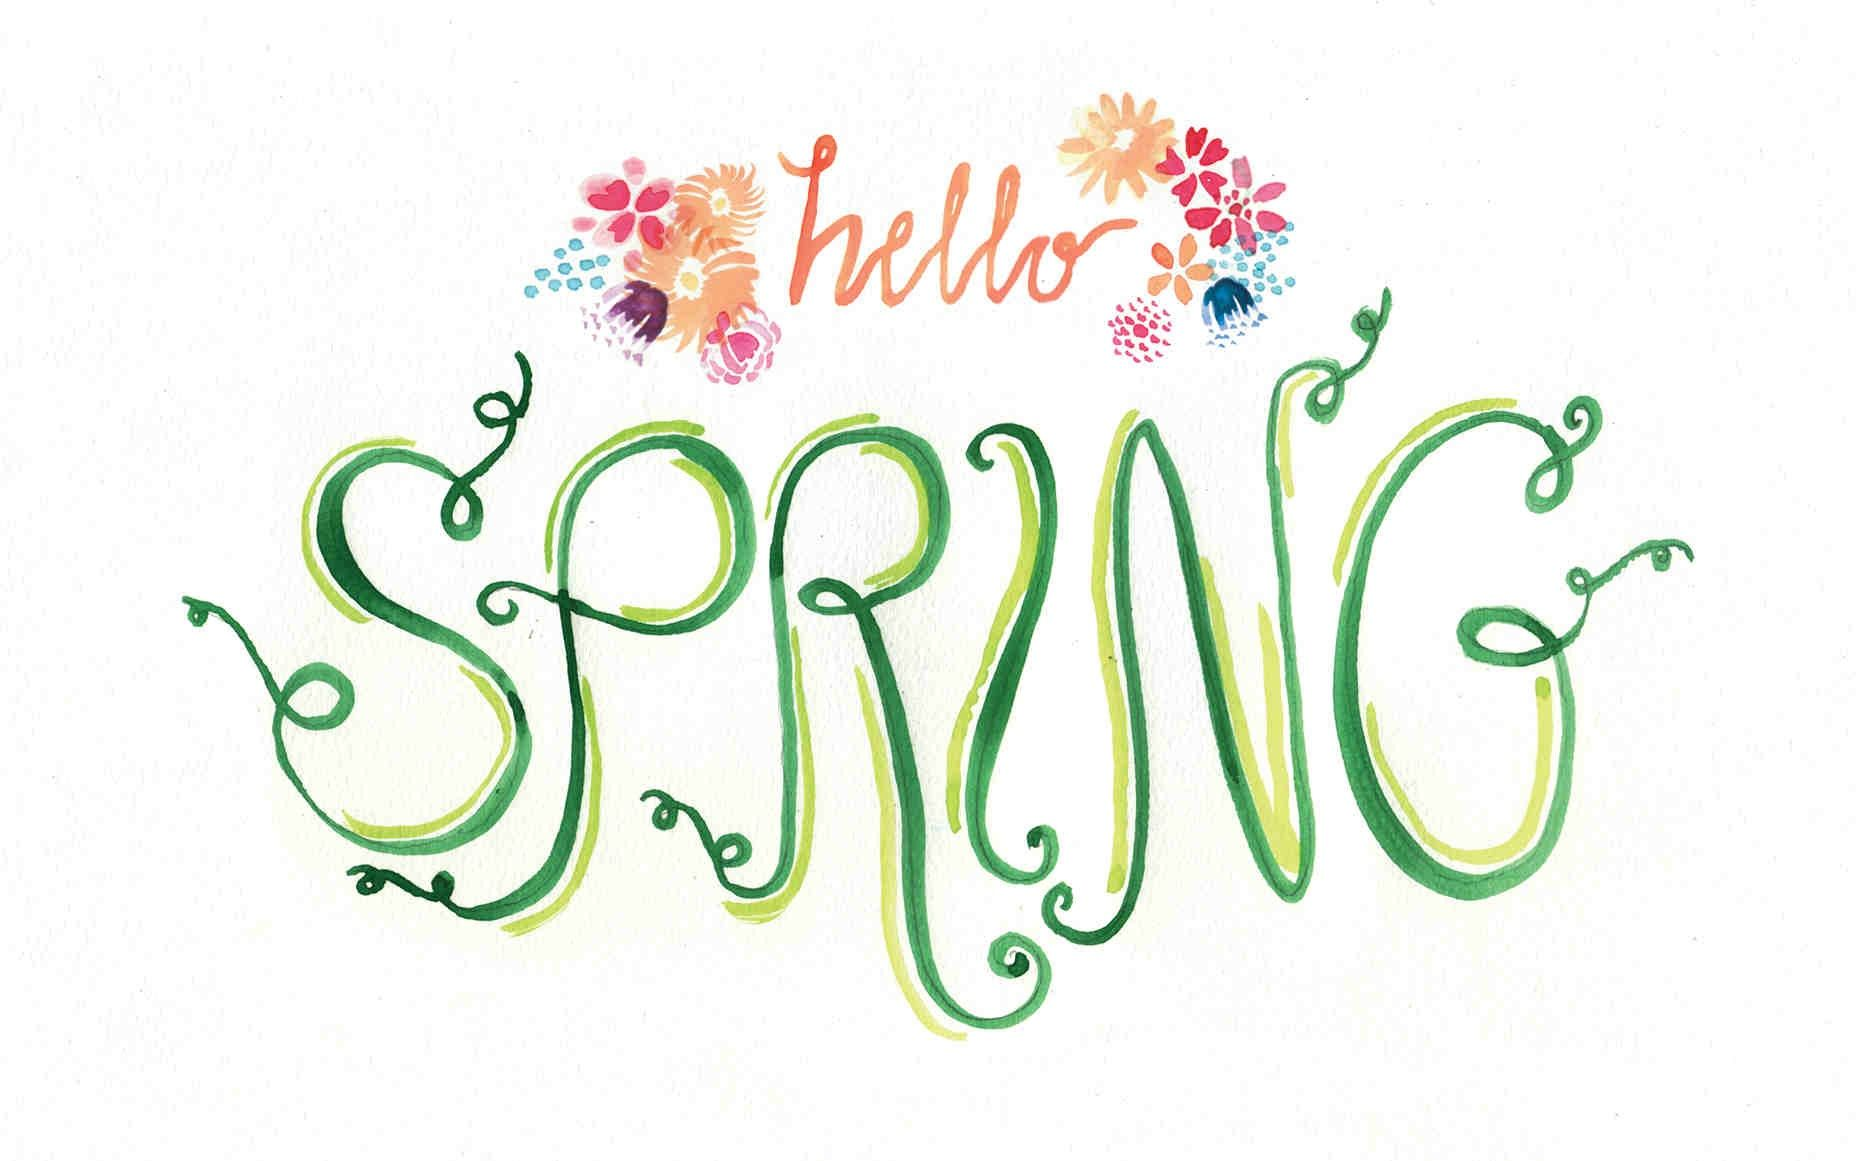 Hello Spring Free Computer Wallpaper Download At Tinyinklings - Happy Spring Desktop Background , HD Wallpaper & Backgrounds